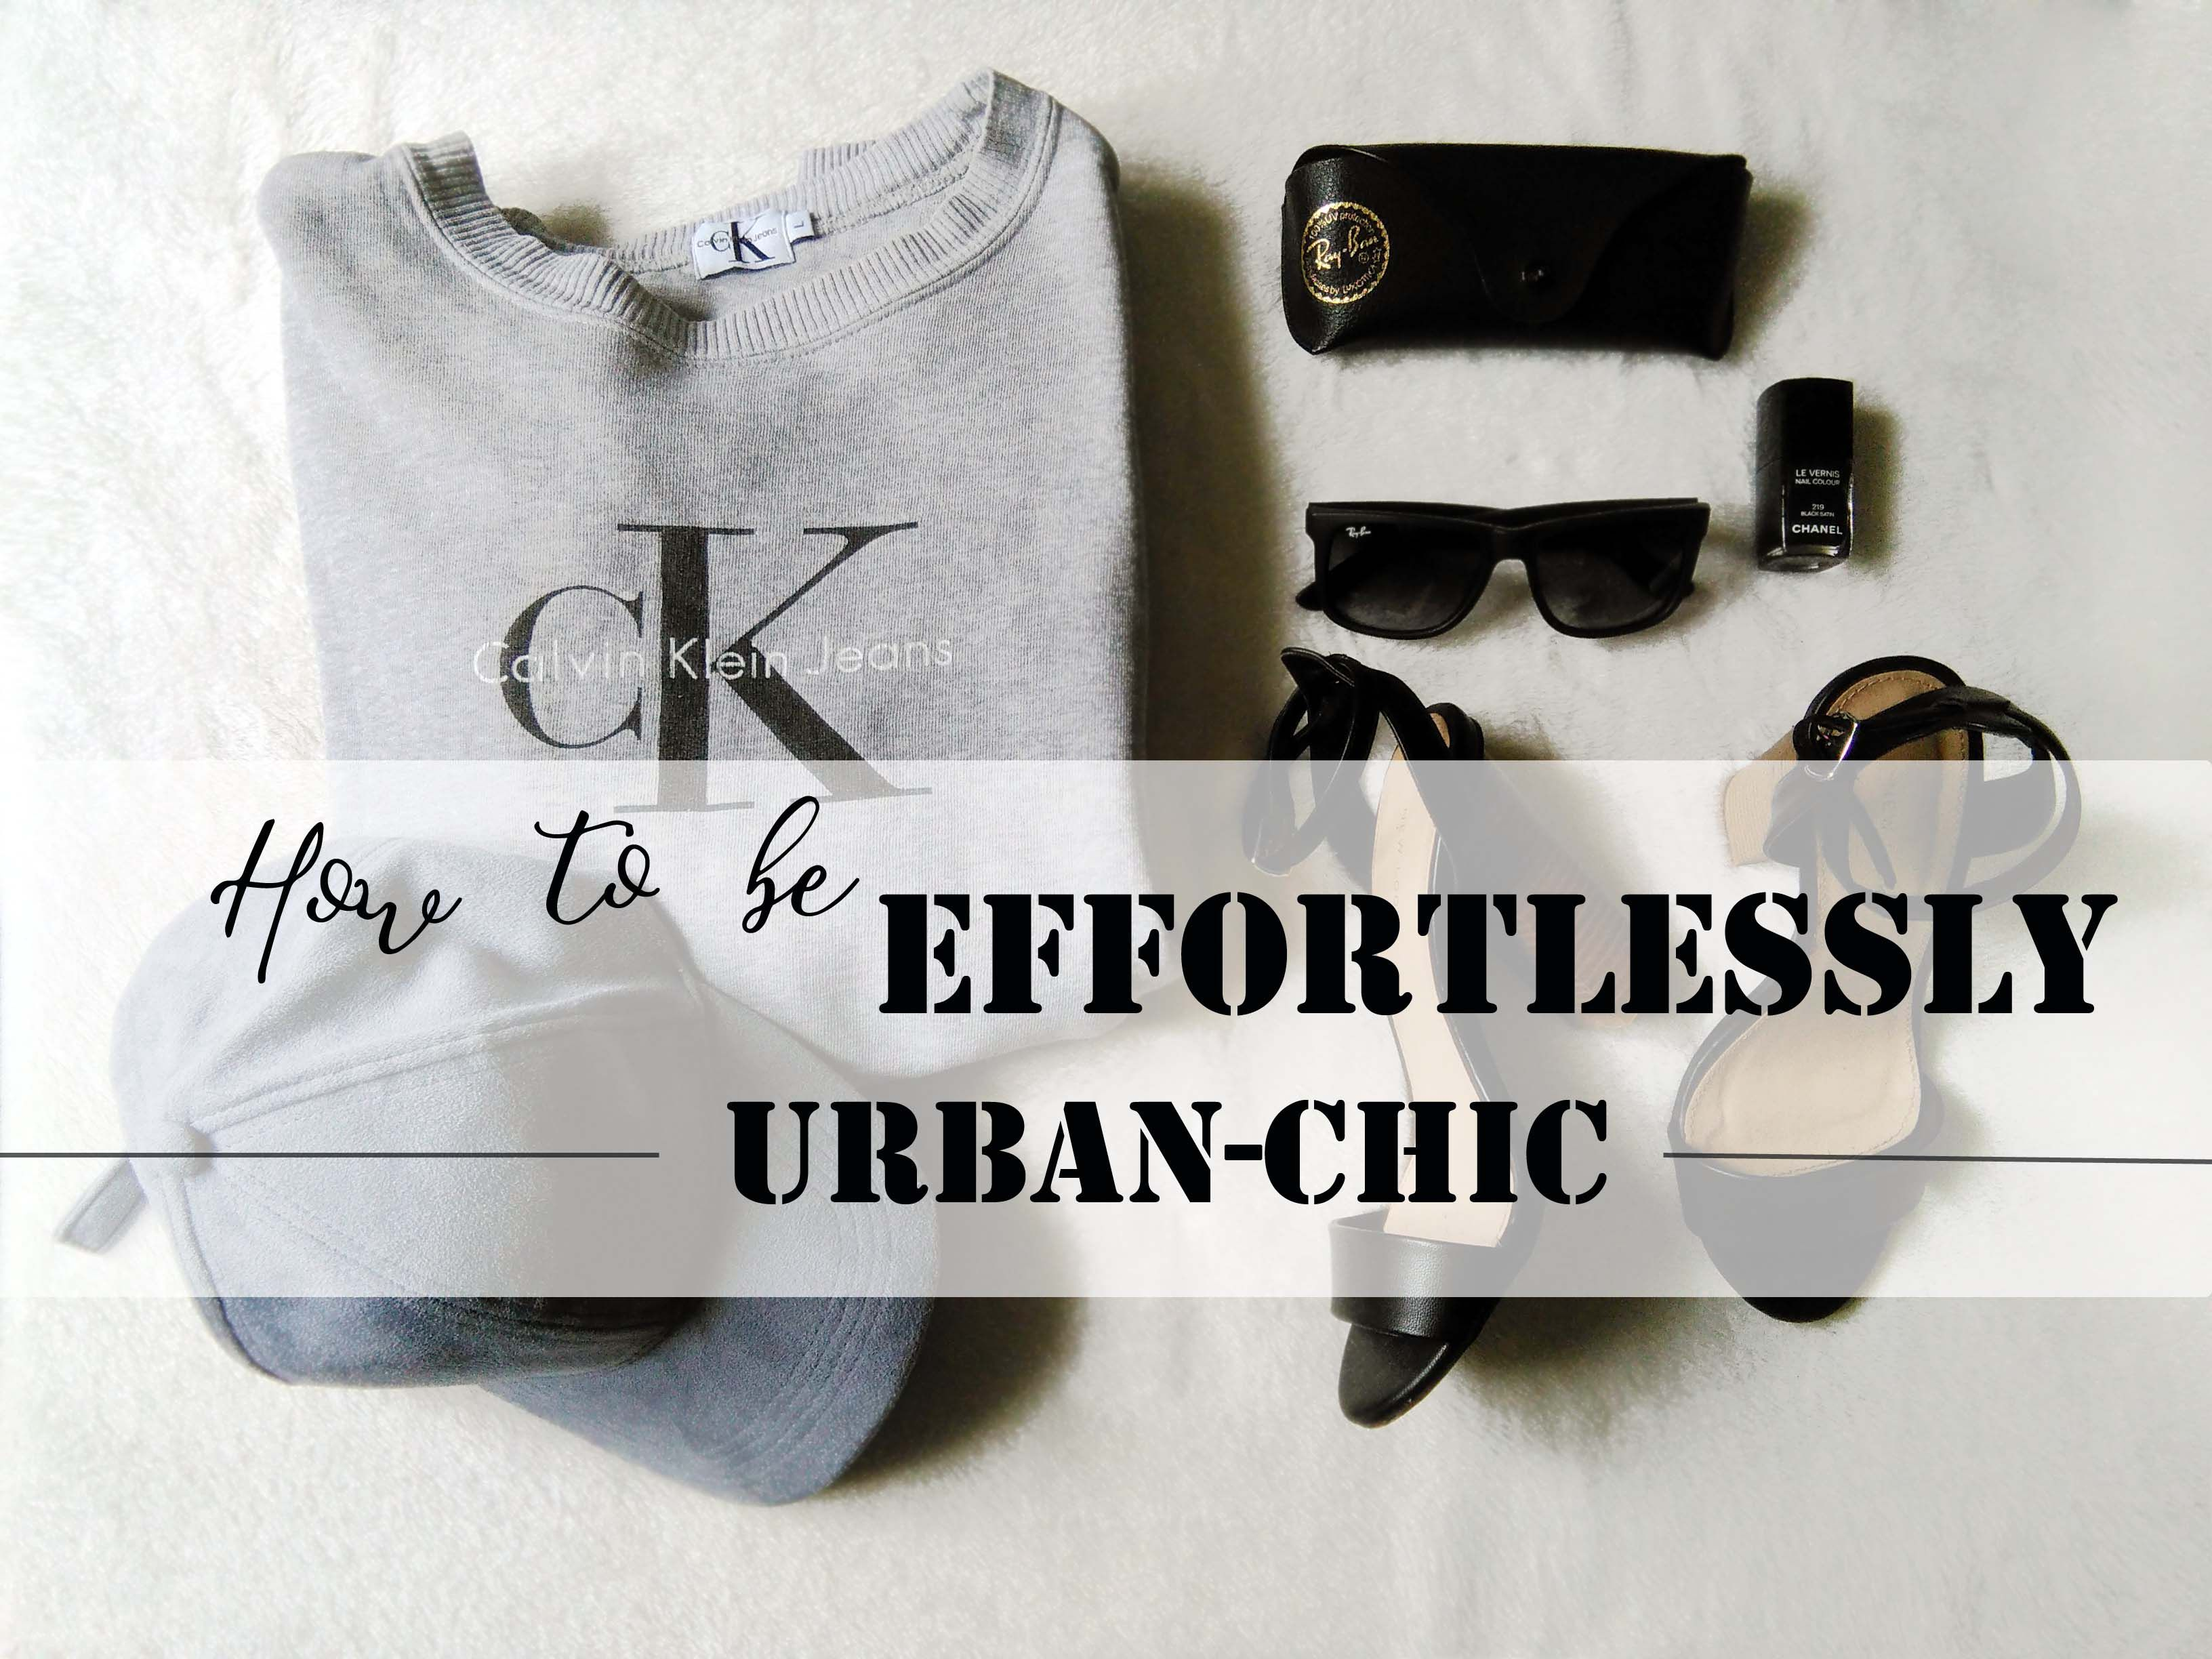 Urban-Chic Outfits and the art of effortless dressing on www.chelf.net